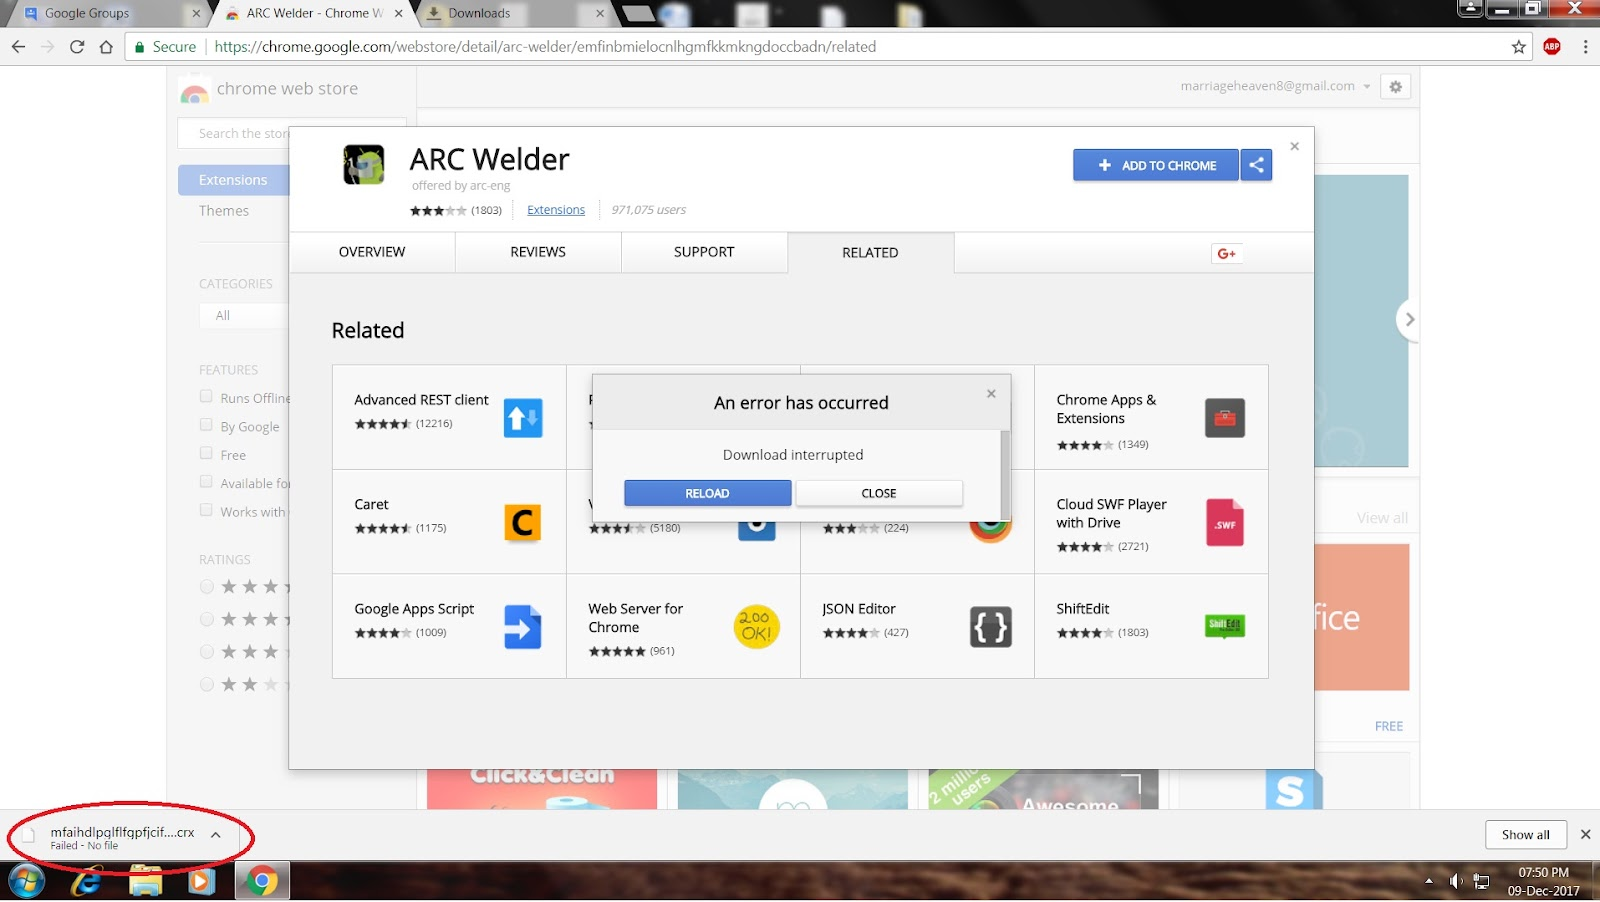 Cannot download any exe file or app from chromestore - Google